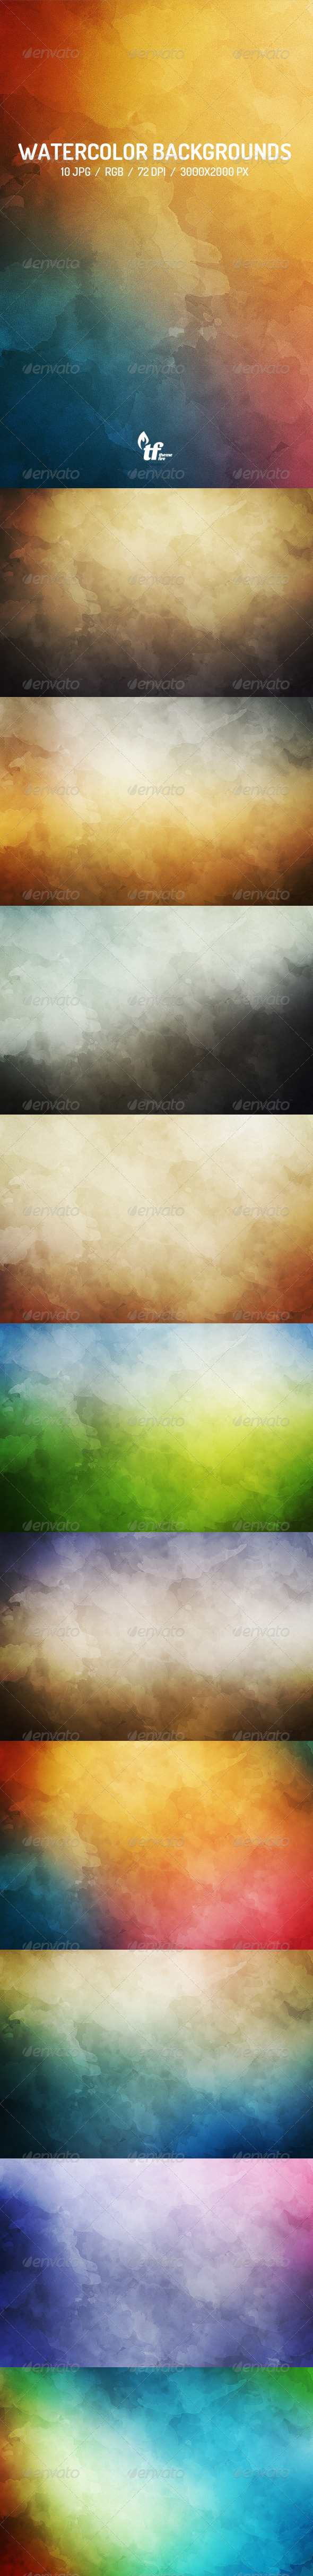 GraphicRiver 10 Watercolor Backgrounds 7457019